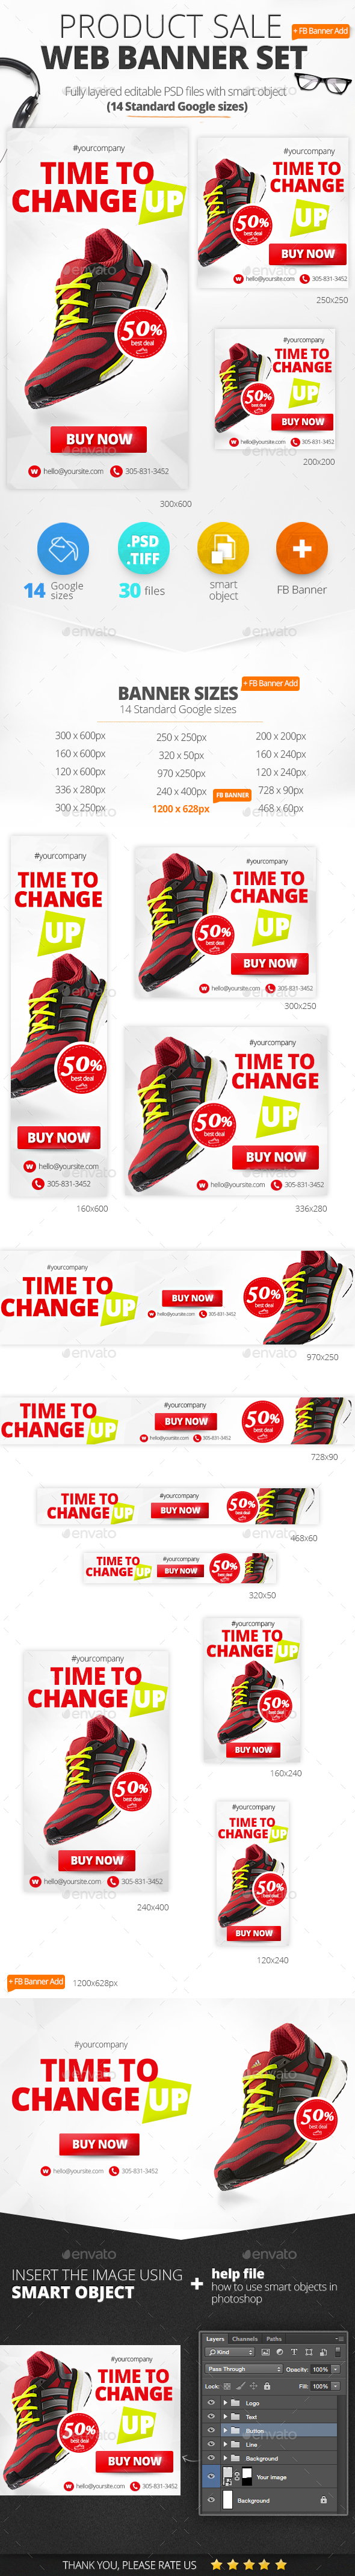 Product Sale Sport Shoes Web Banners  - Banners & Ads Web Elements